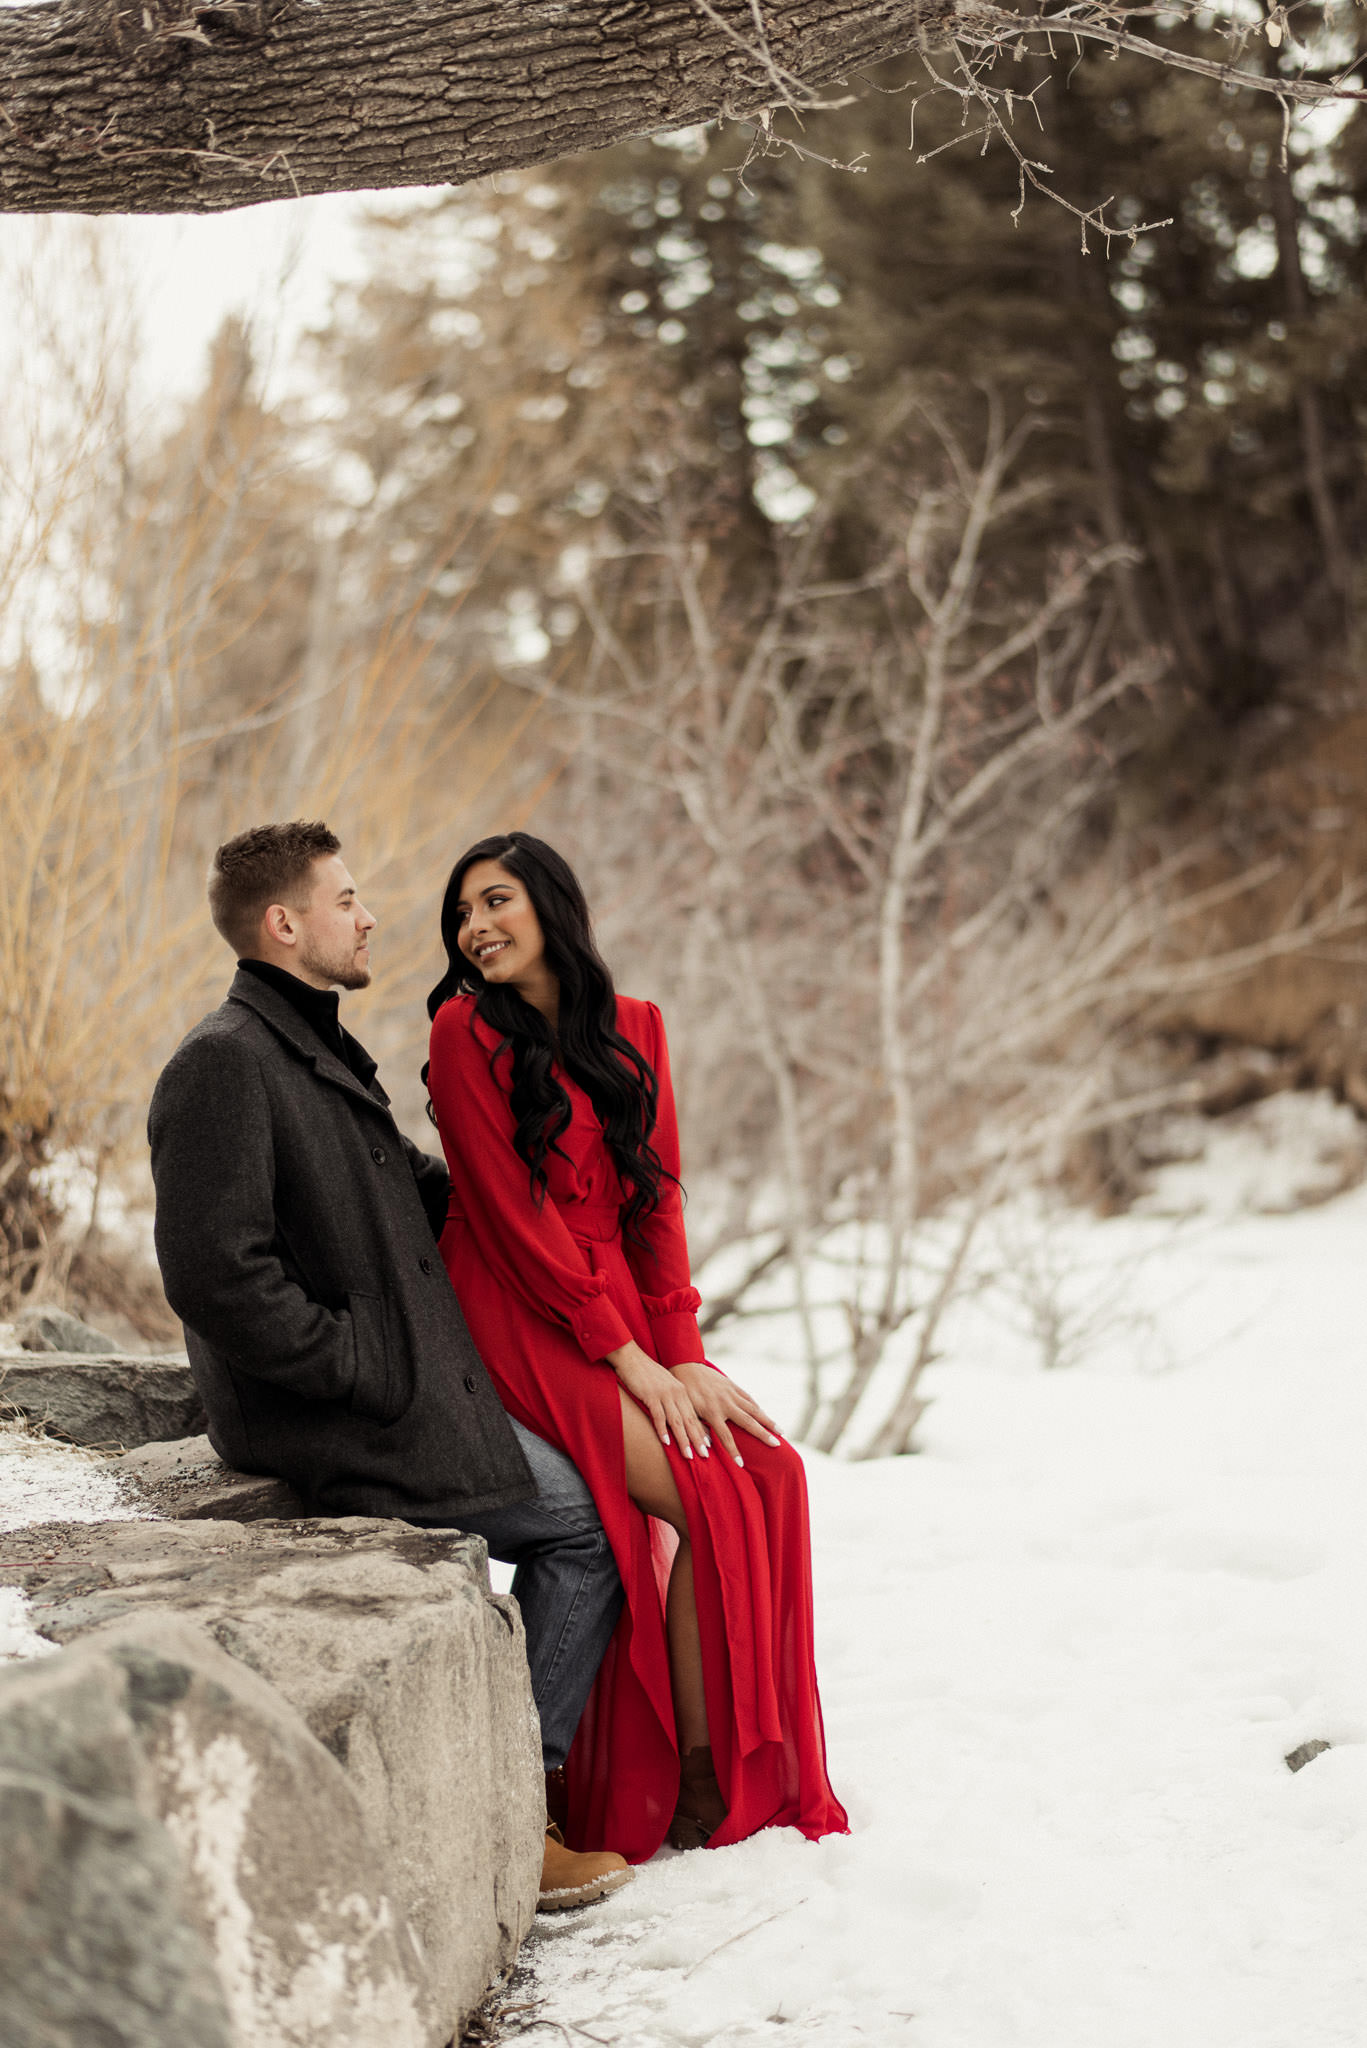 sandra-ryan-colorado-winter-snow-engagement-couples-valentines-red-houston-photographer-sm-11.jpg